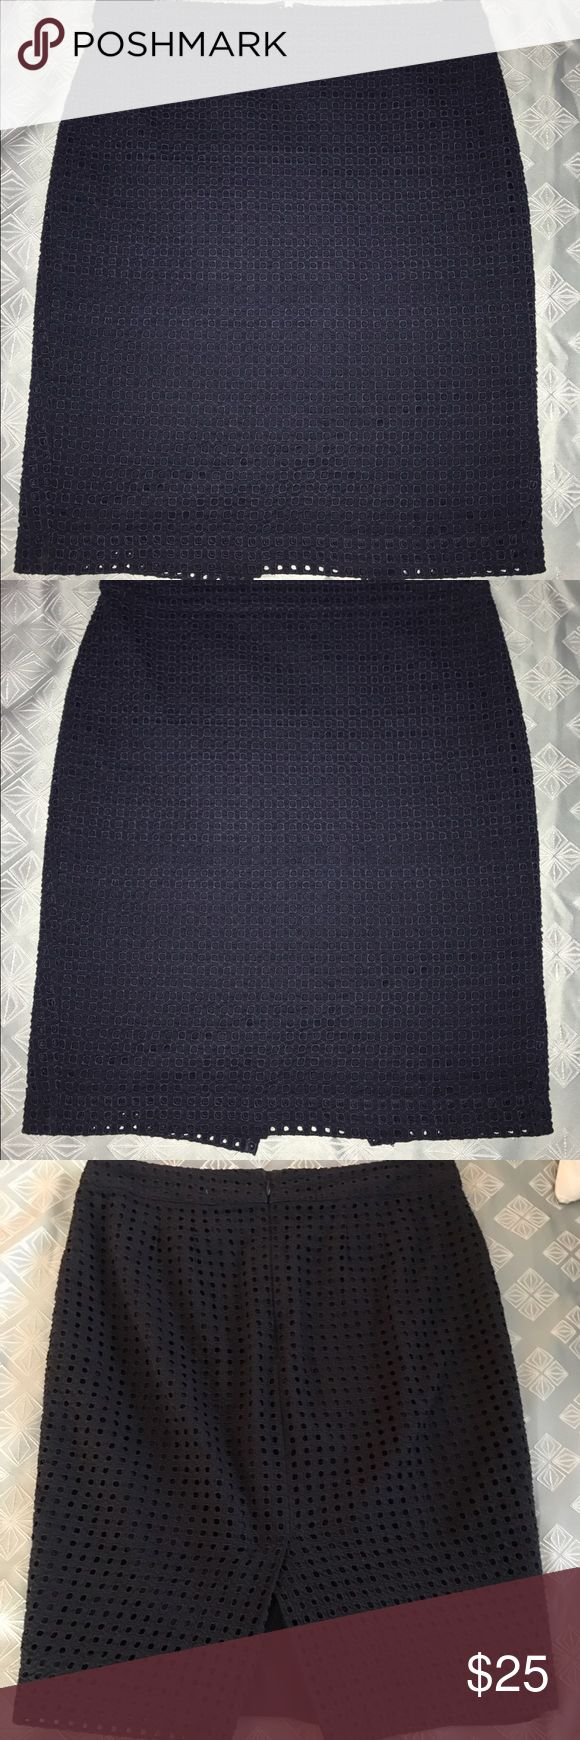 Curvy LOFT Navy Blue Eyelet Pencil Skirt 8T tall Curtly LOFT Navy Blue Eyelet Pencil Skirt 8 tall long. Great skirt to amp up your office uniform!  Navy Blue keeps it professional, while the fun eyelet style keeps it interesting. The lining can hang low depending on personal fit. Previously loved condition. LOFT Skirts Pencil